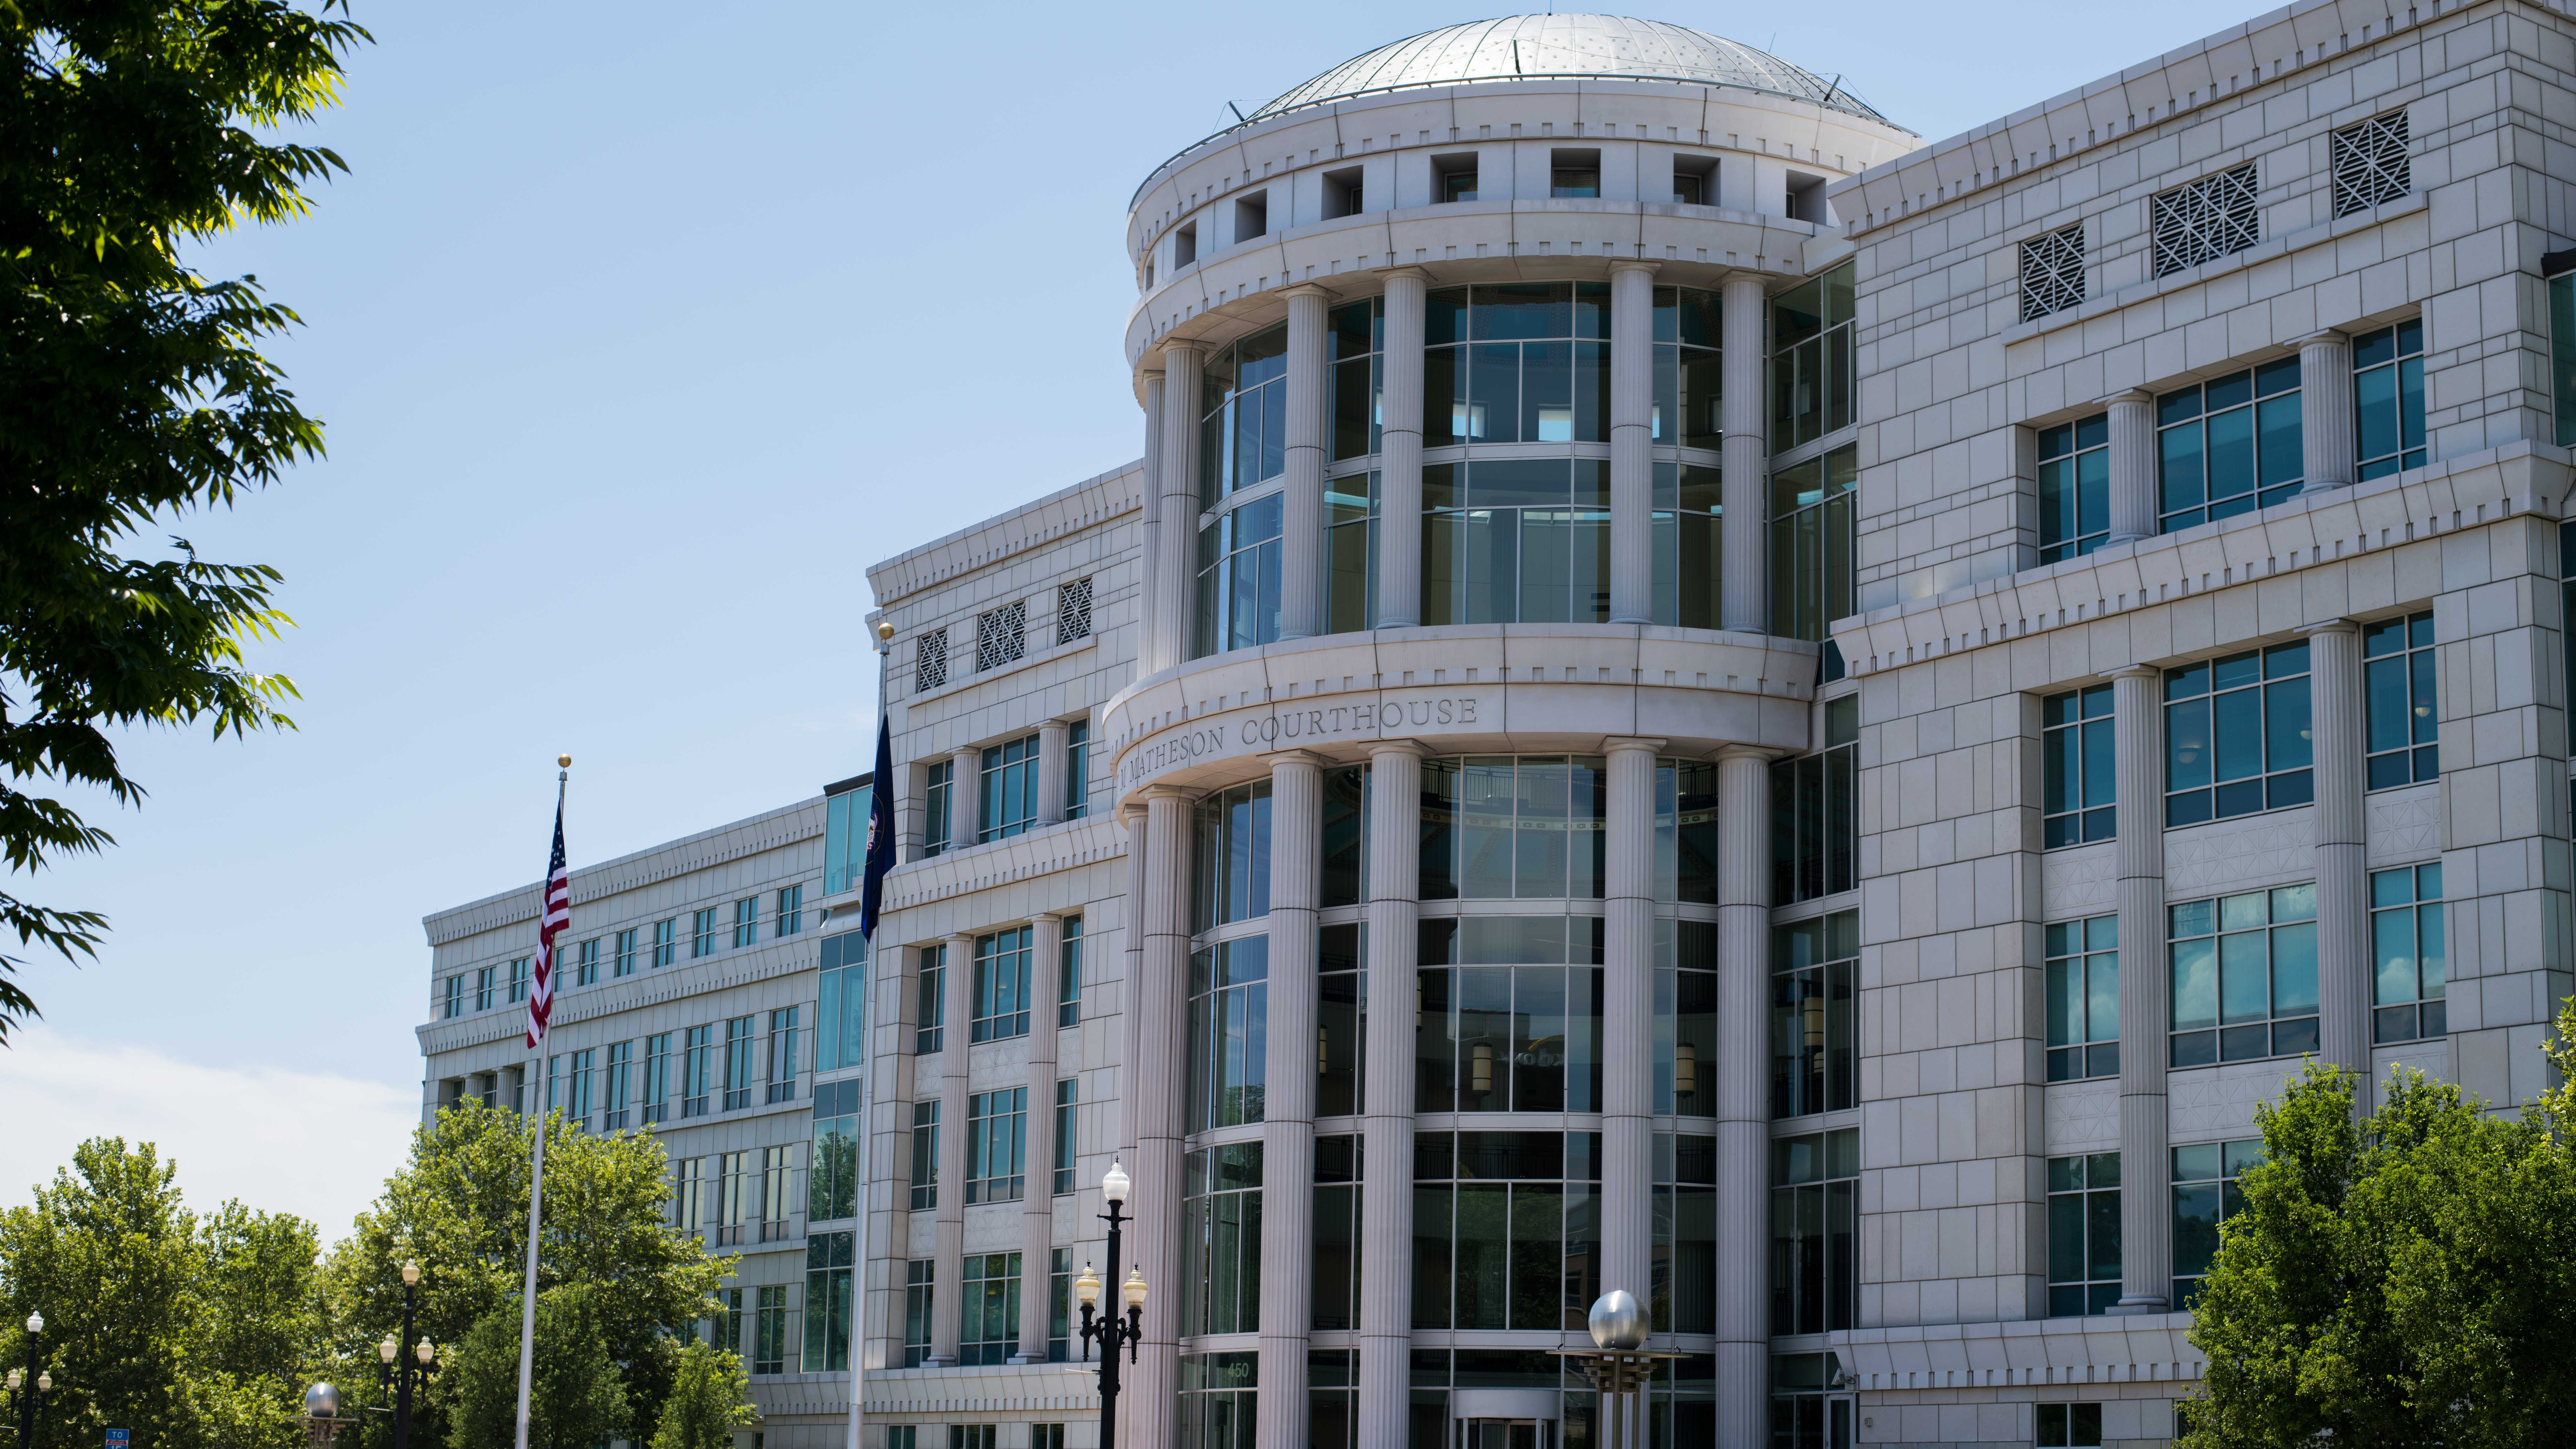 Scott M. Matheson Courthouse in Salt Lake City, UT on Monday July 09, 2018.  (Photo by Curtis Lin/ Daily Utah Chronicle)